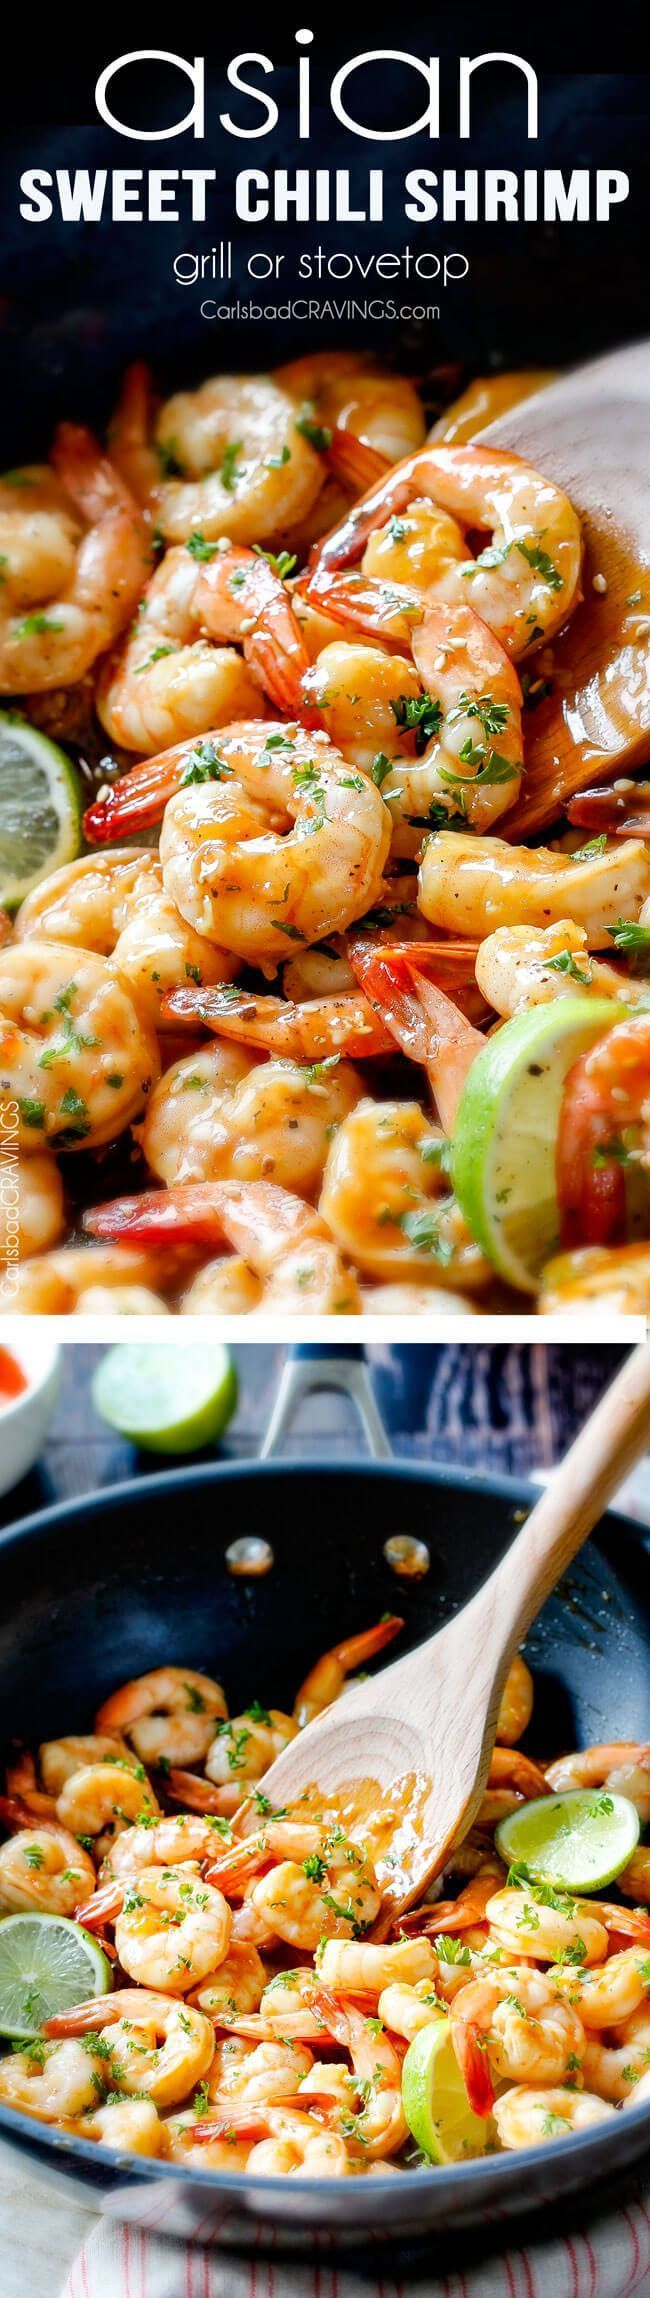 Sweet Chili Shrimp (grill or stovetop) -